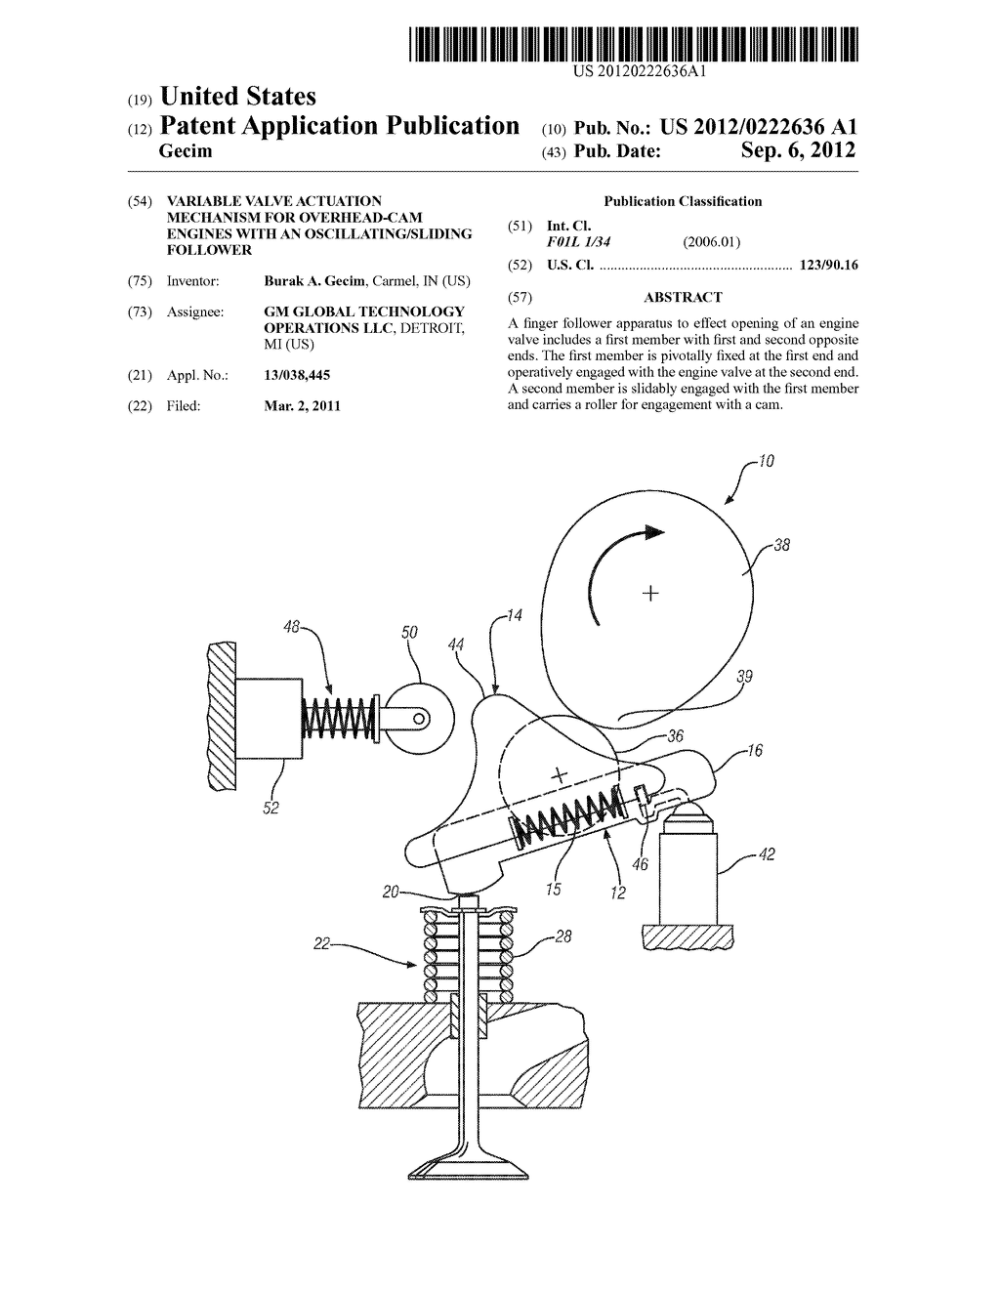 medium resolution of variable valve actuation mechanism for overhead cam engines with an oscillating sliding follower diagram schematic and image 01